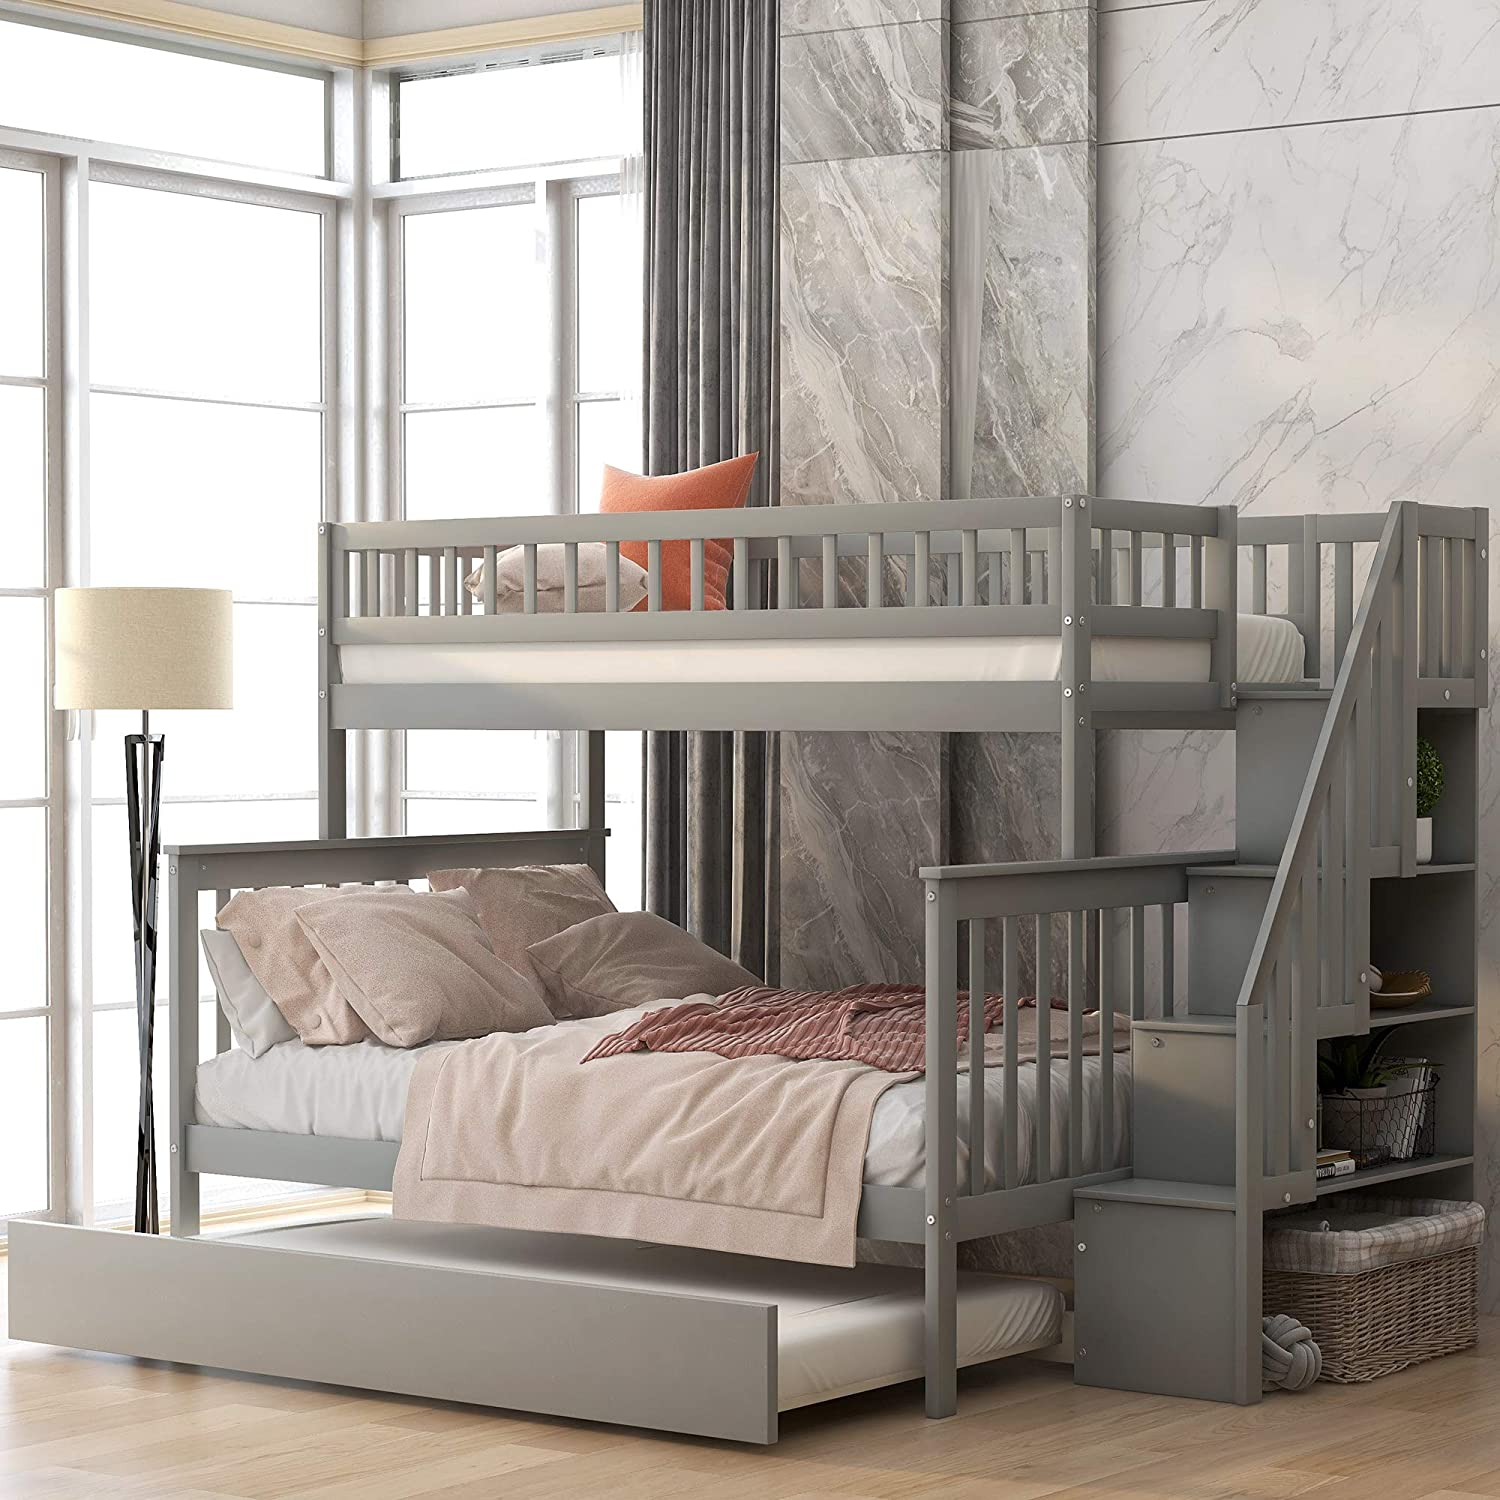 Kids Bed Frame Full Cheaper Than Retail Price Buy Clothing Accessories And Lifestyle Products For Women Men